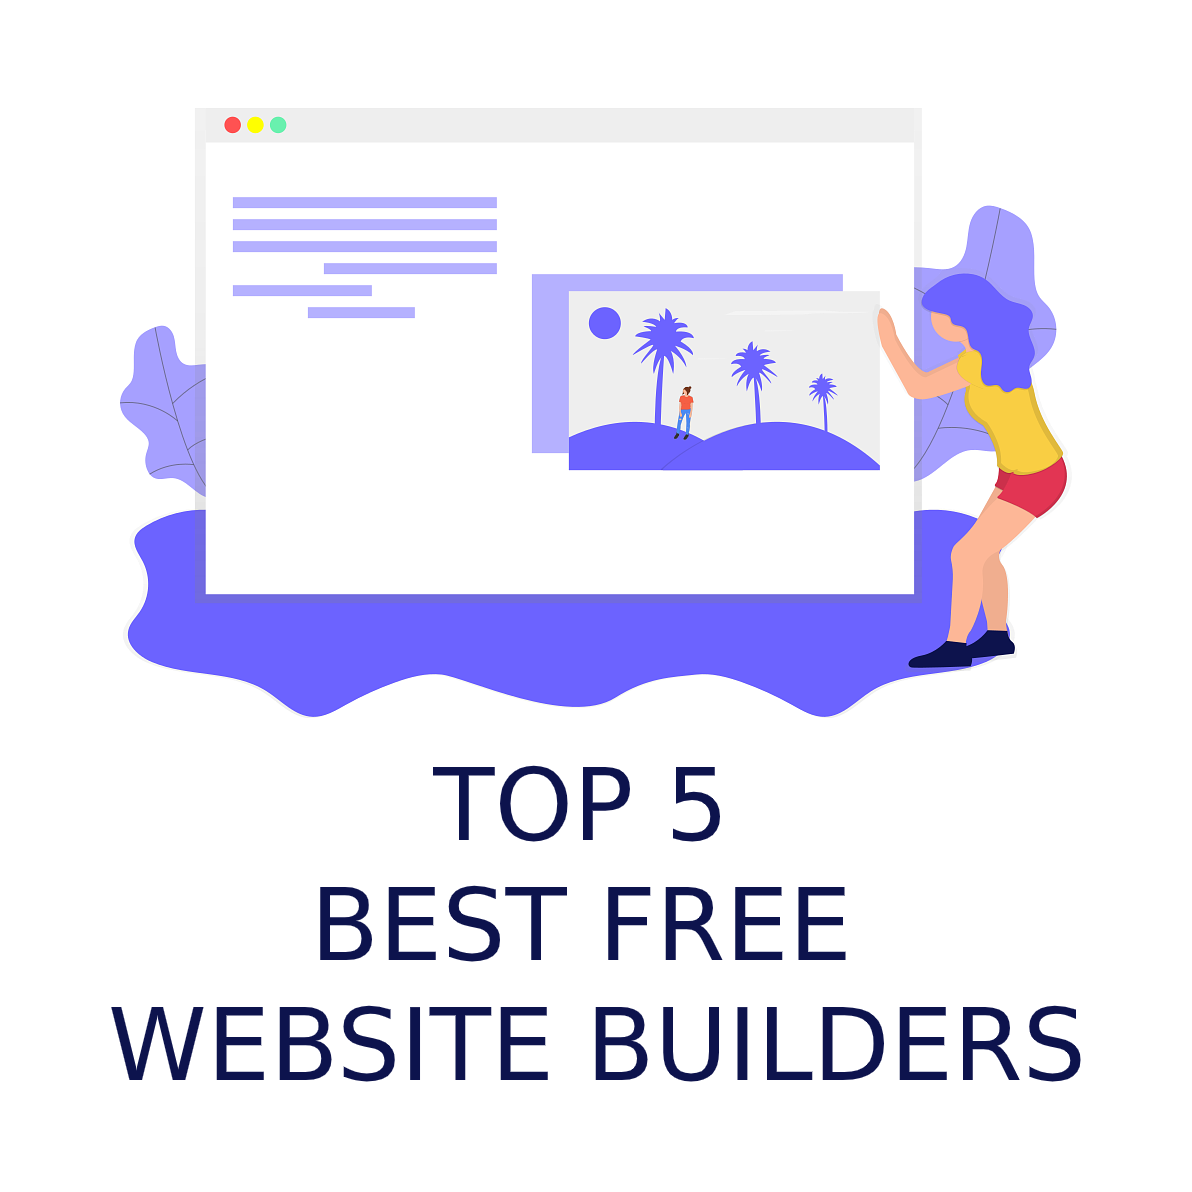 Top 5 Best Free Website Builders in 2019-2020